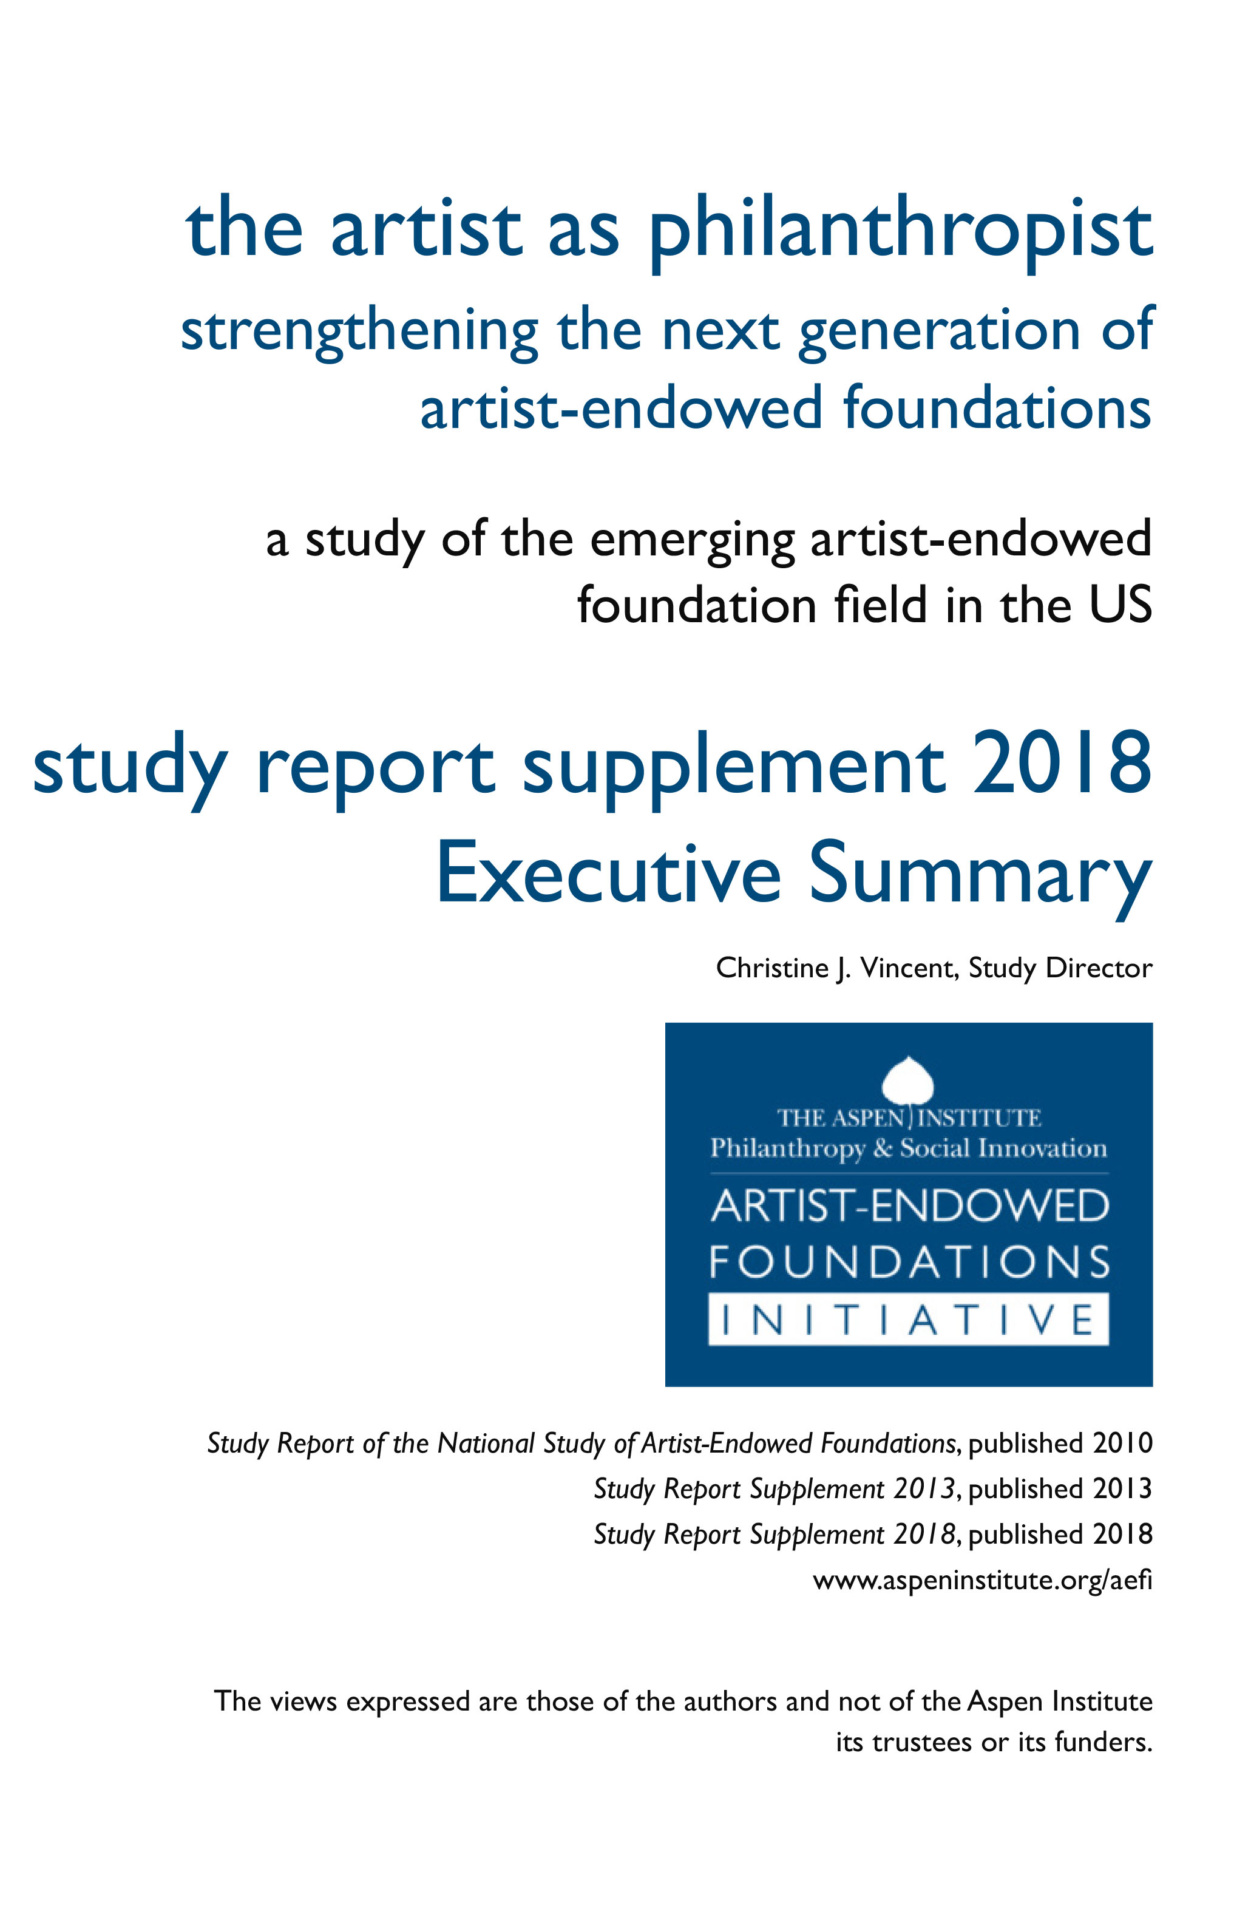 2018 Study Report Supplement 2018 Executive Summary